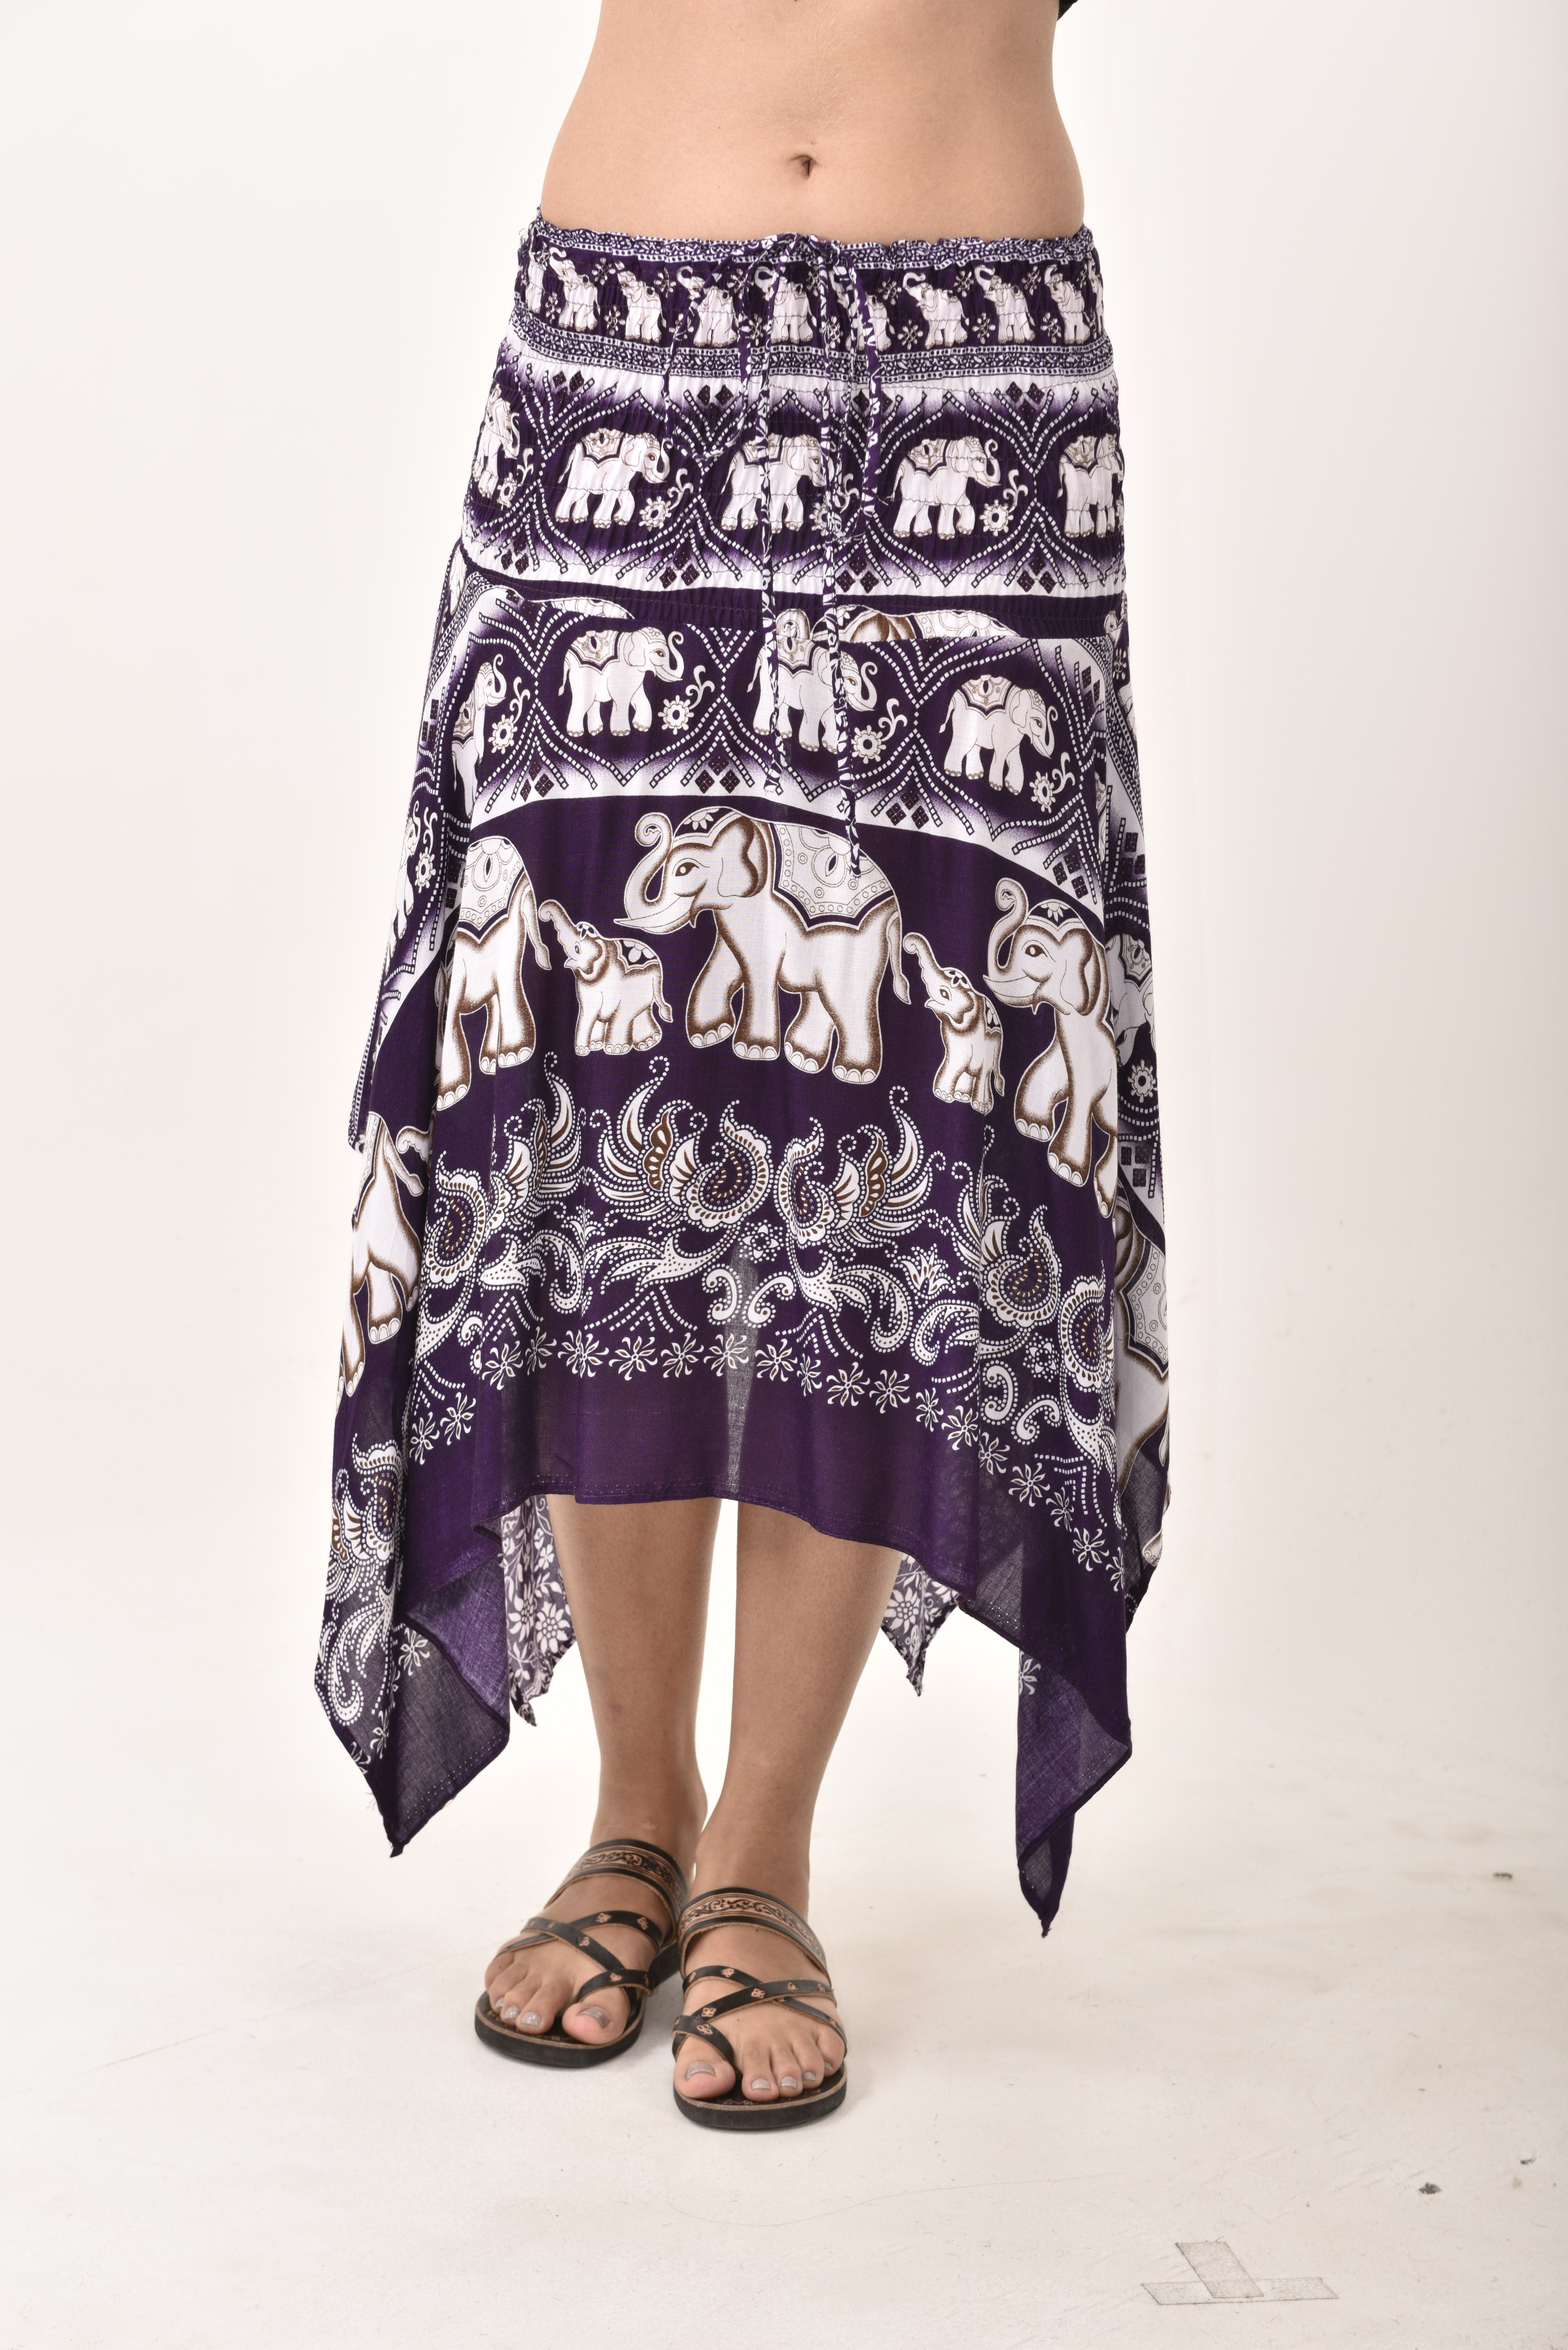 Elephant Print Fairy Dress / Skirt Purple